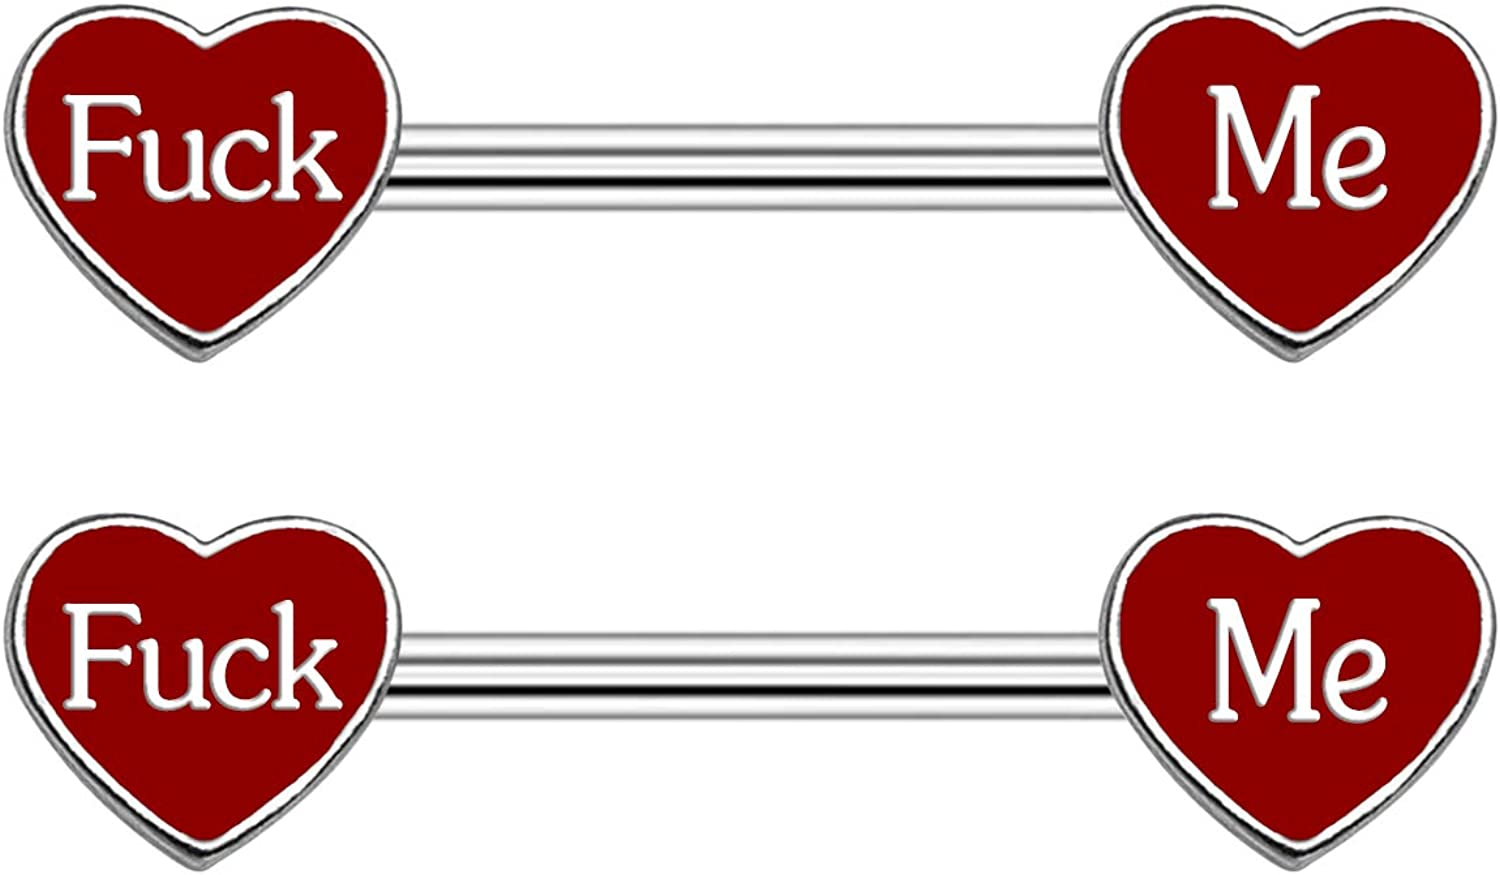 CHARMM Nipple Ring Piercing Enamel Red Heart Carved with Fuck Me 14 Gauge Surgical Stainless Steel Barbell Nipple Rings for Women Men (Fuck ME)